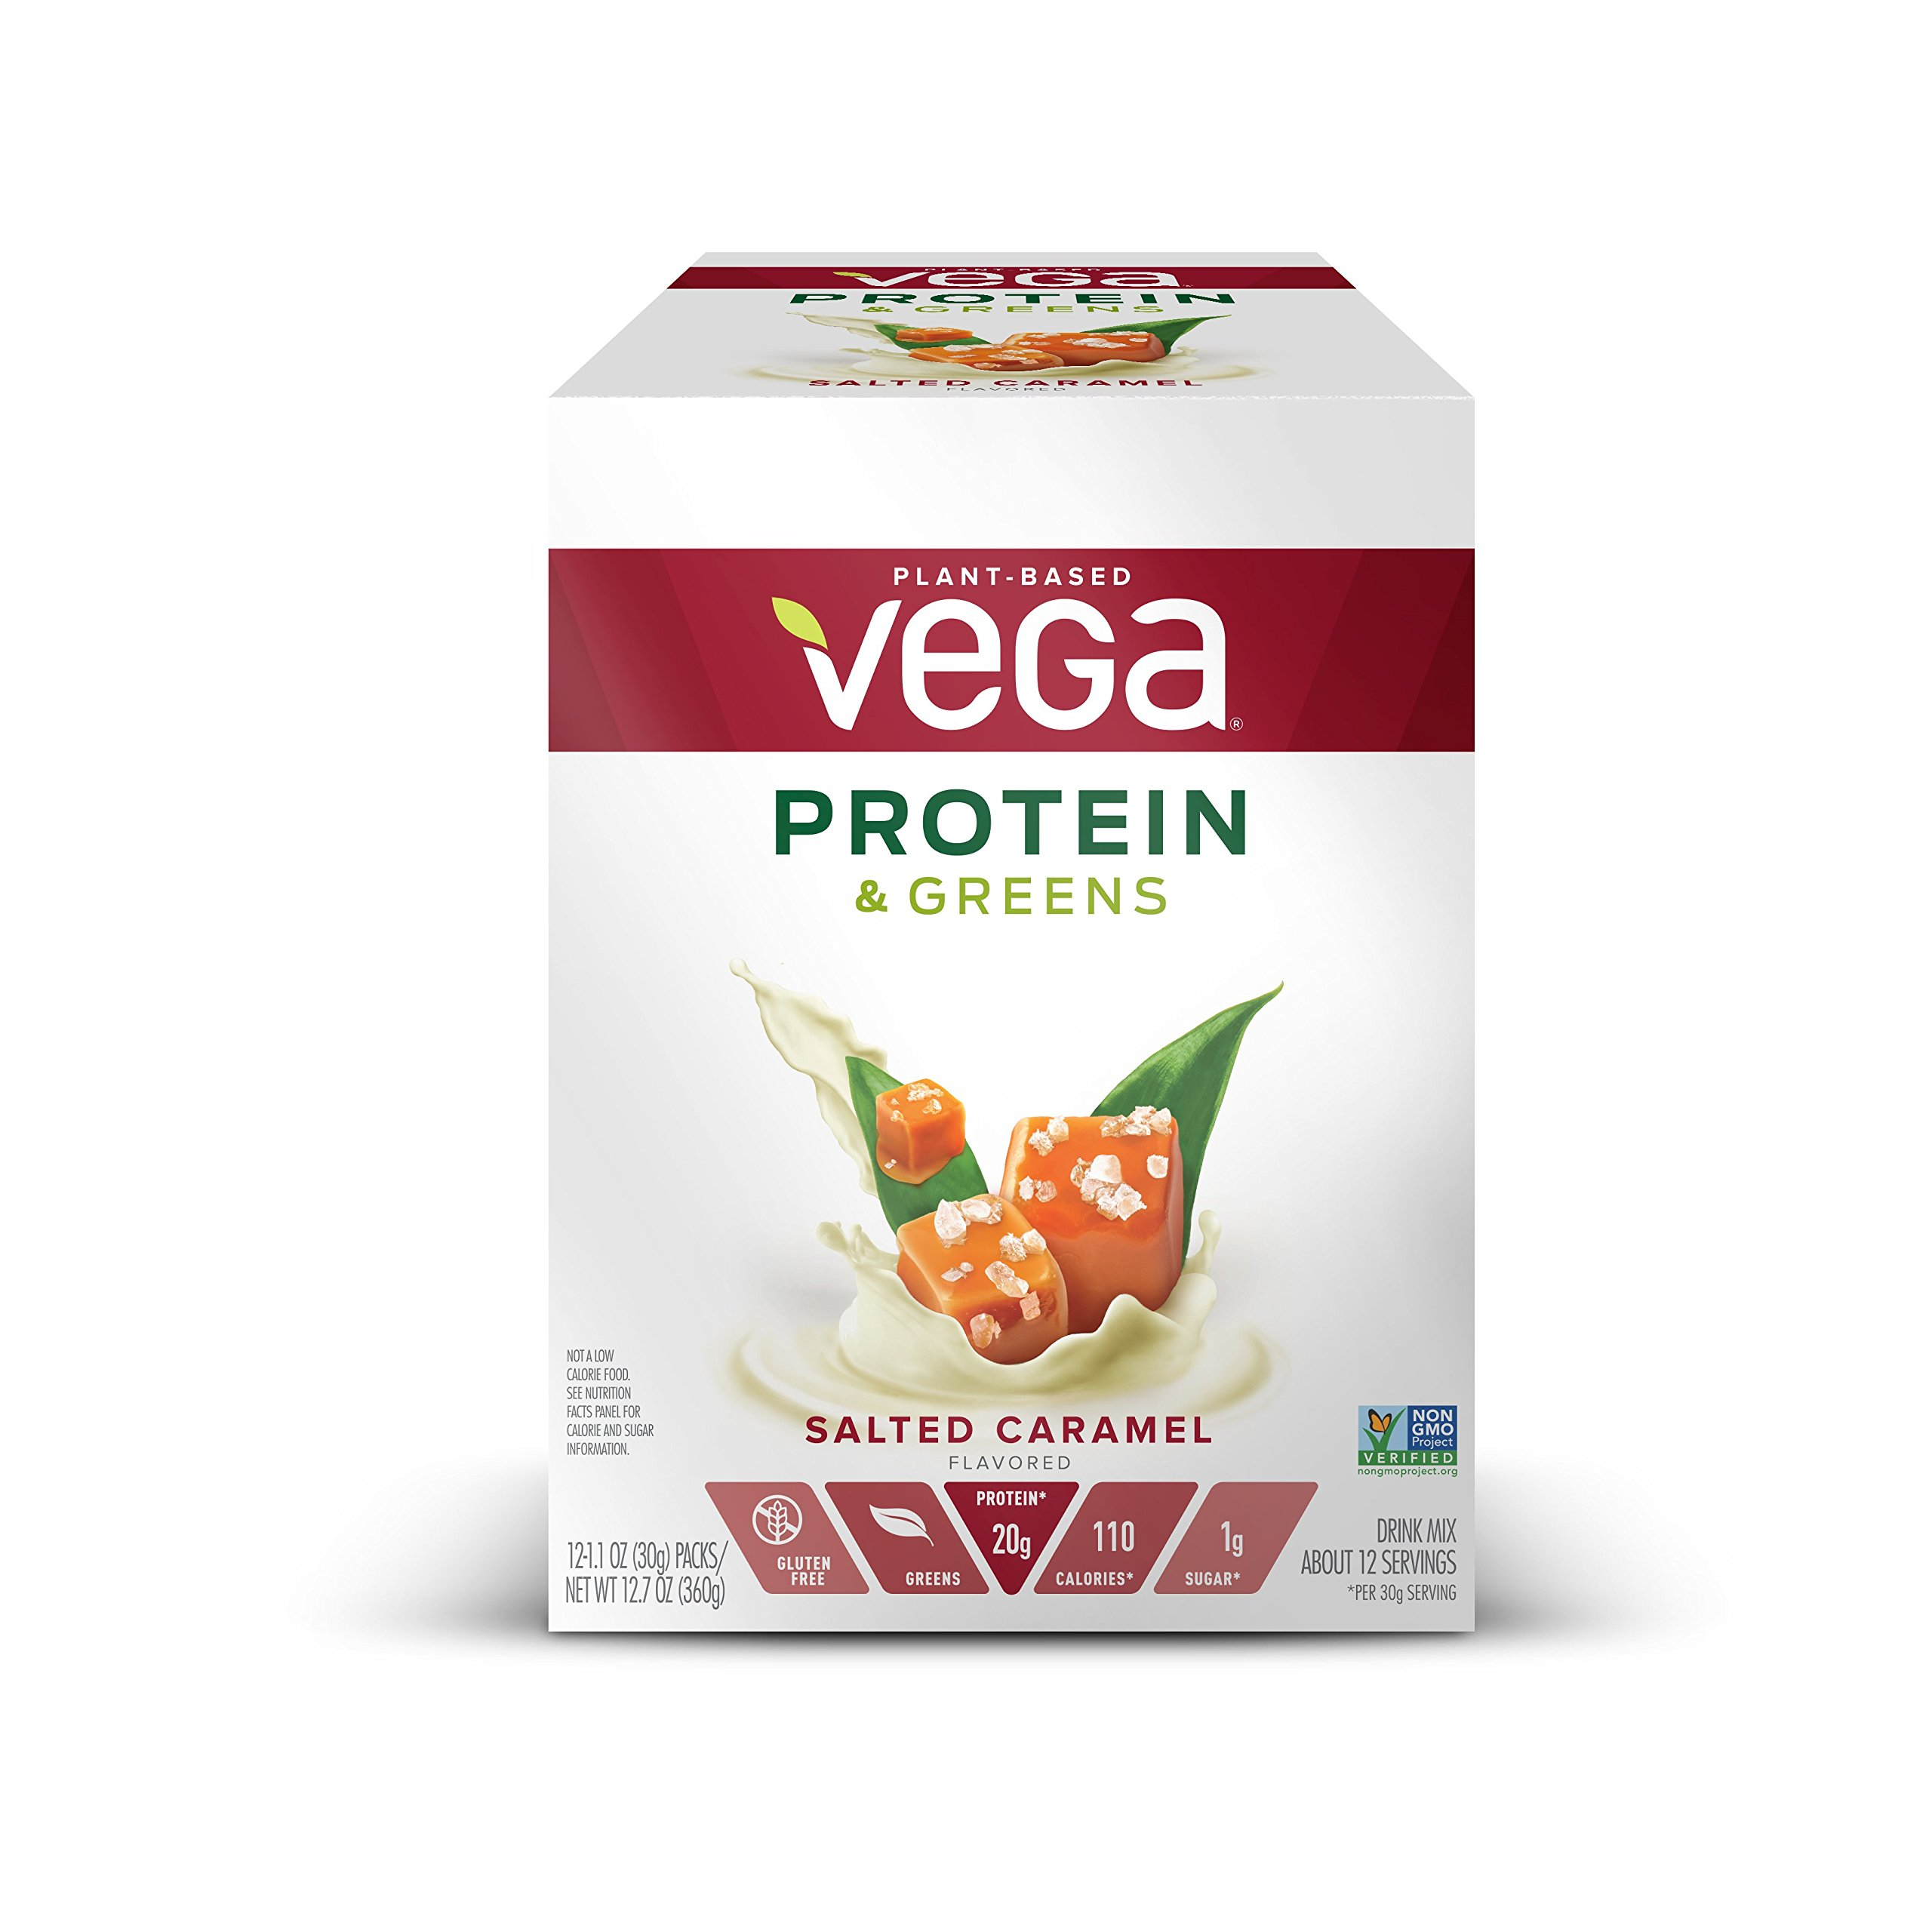 Vega Protein & Greens Plant Protein Shake, Salted Caramel, 12 Count